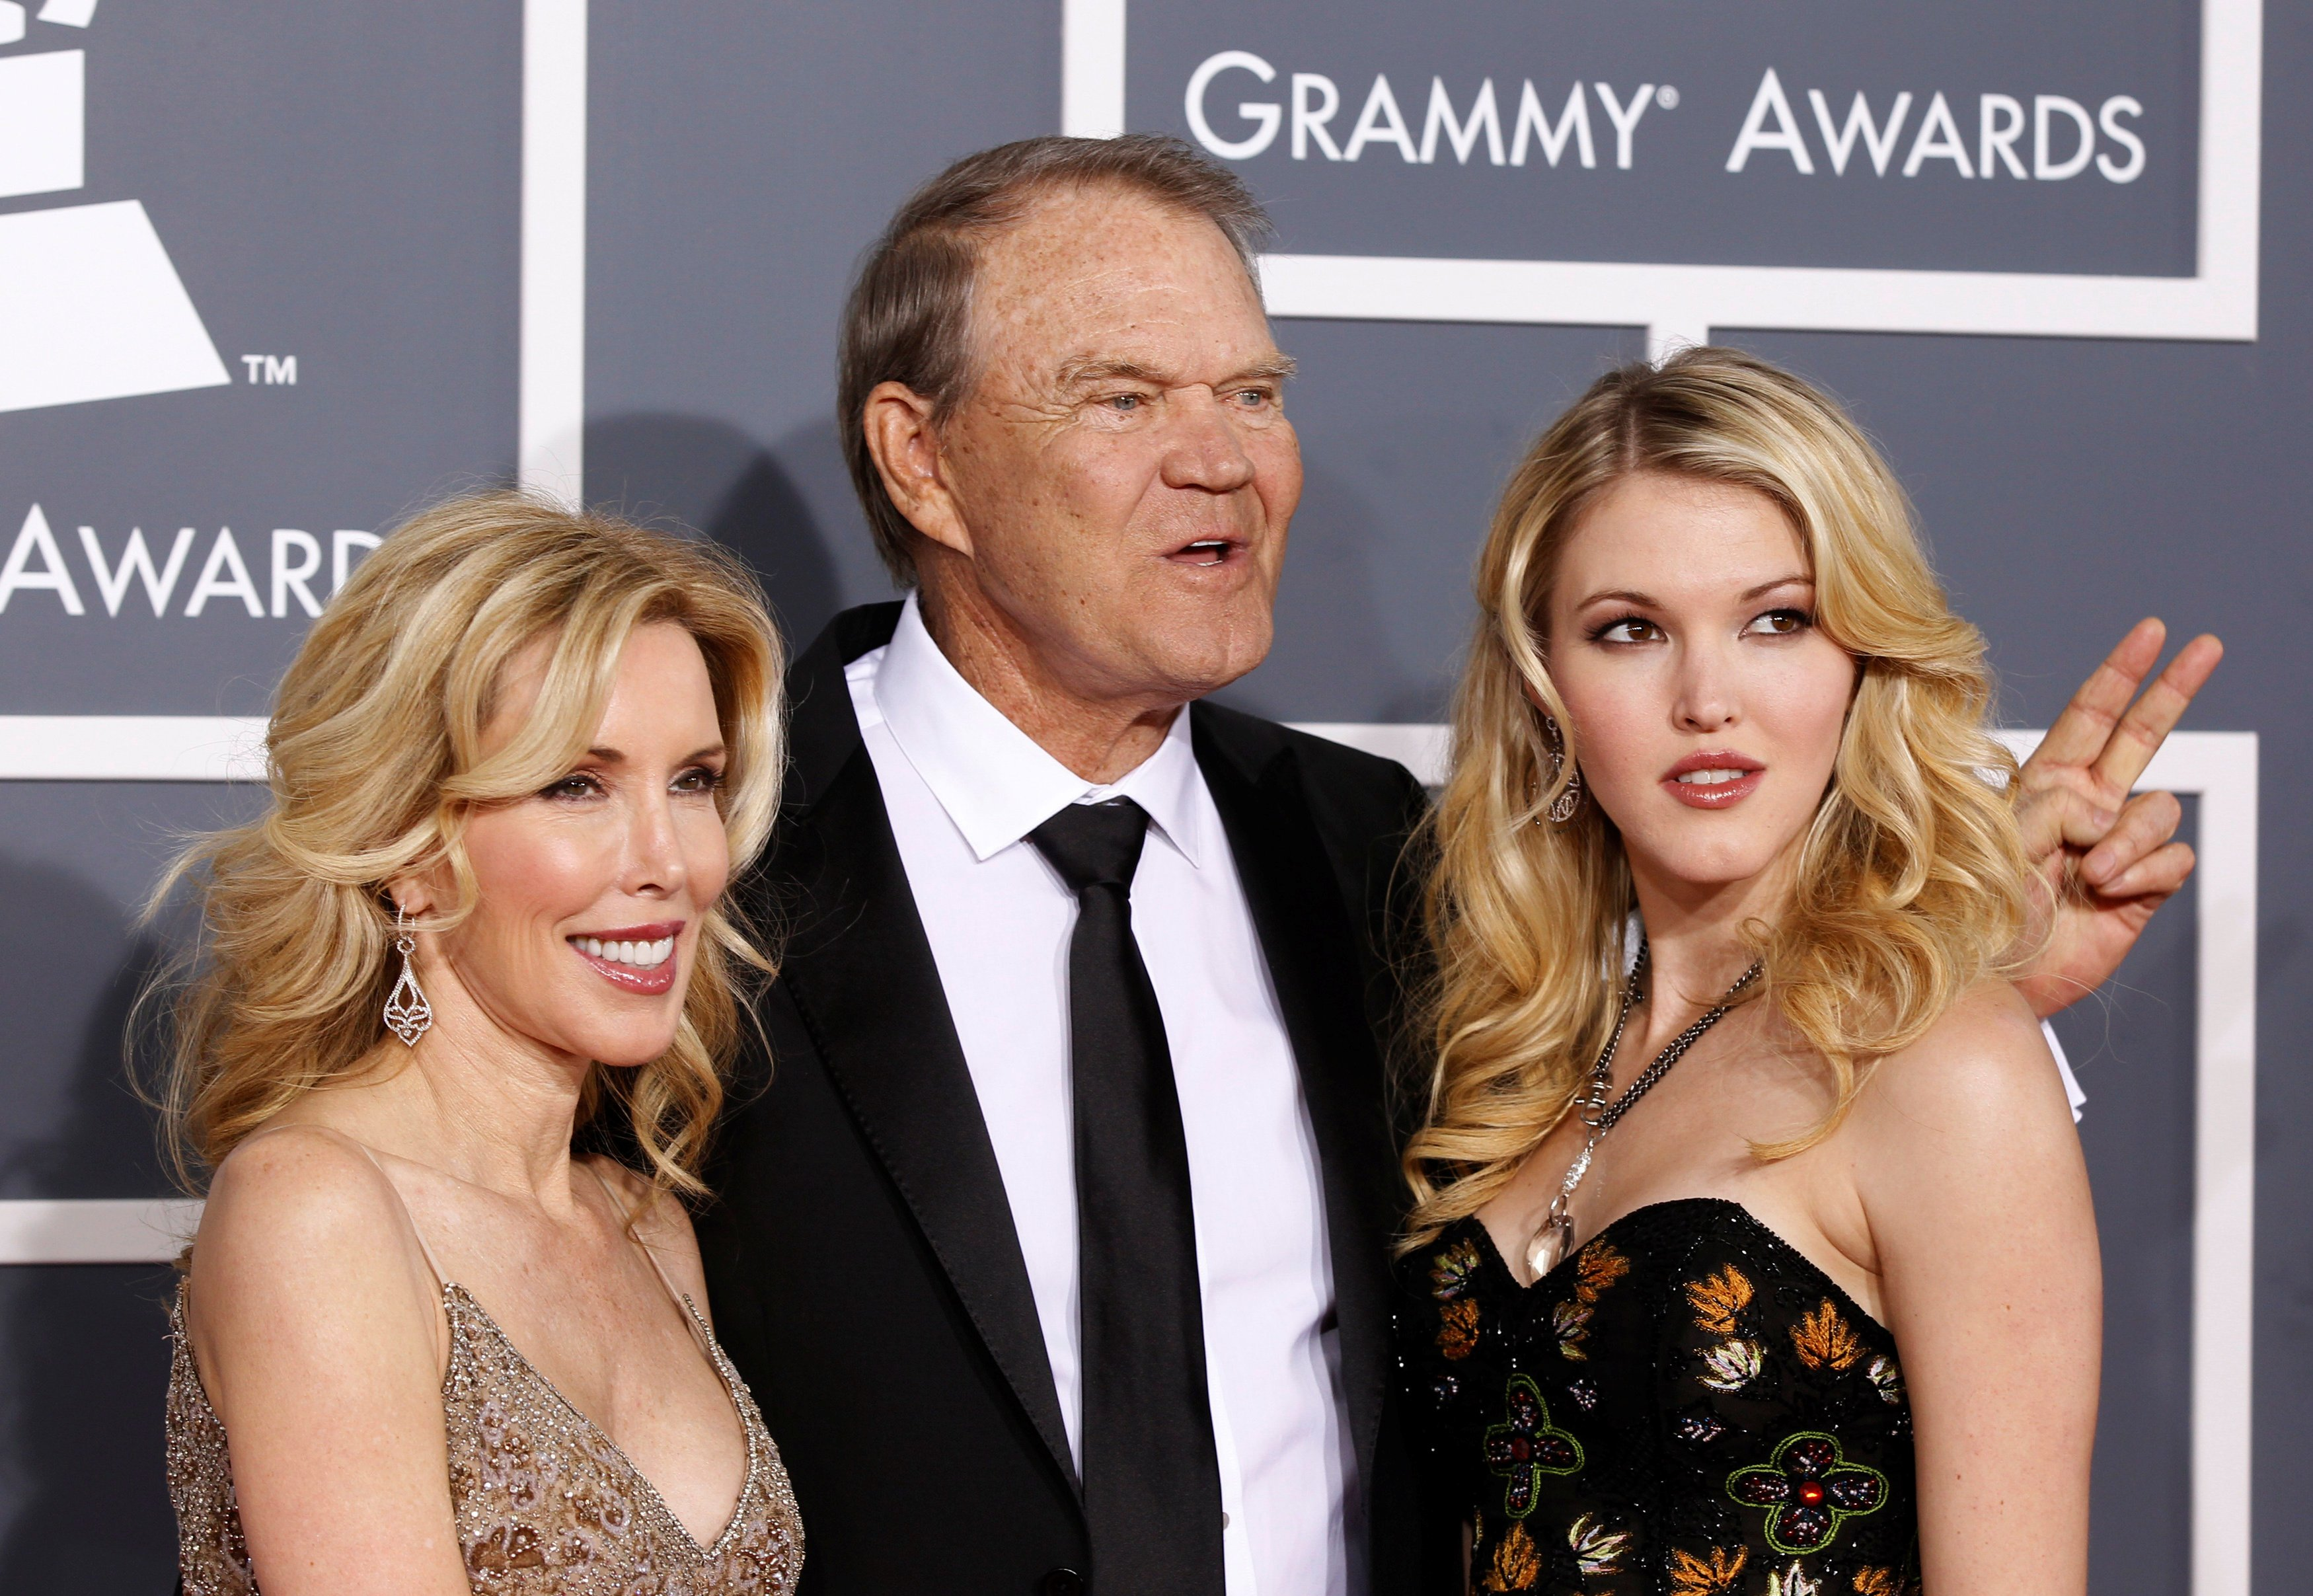 FILE PHOTO: Glen Campbell with his wife Kim (L) and daughter Ashley arrive at the 54th annual Grammy Awards in Los Angeles, California